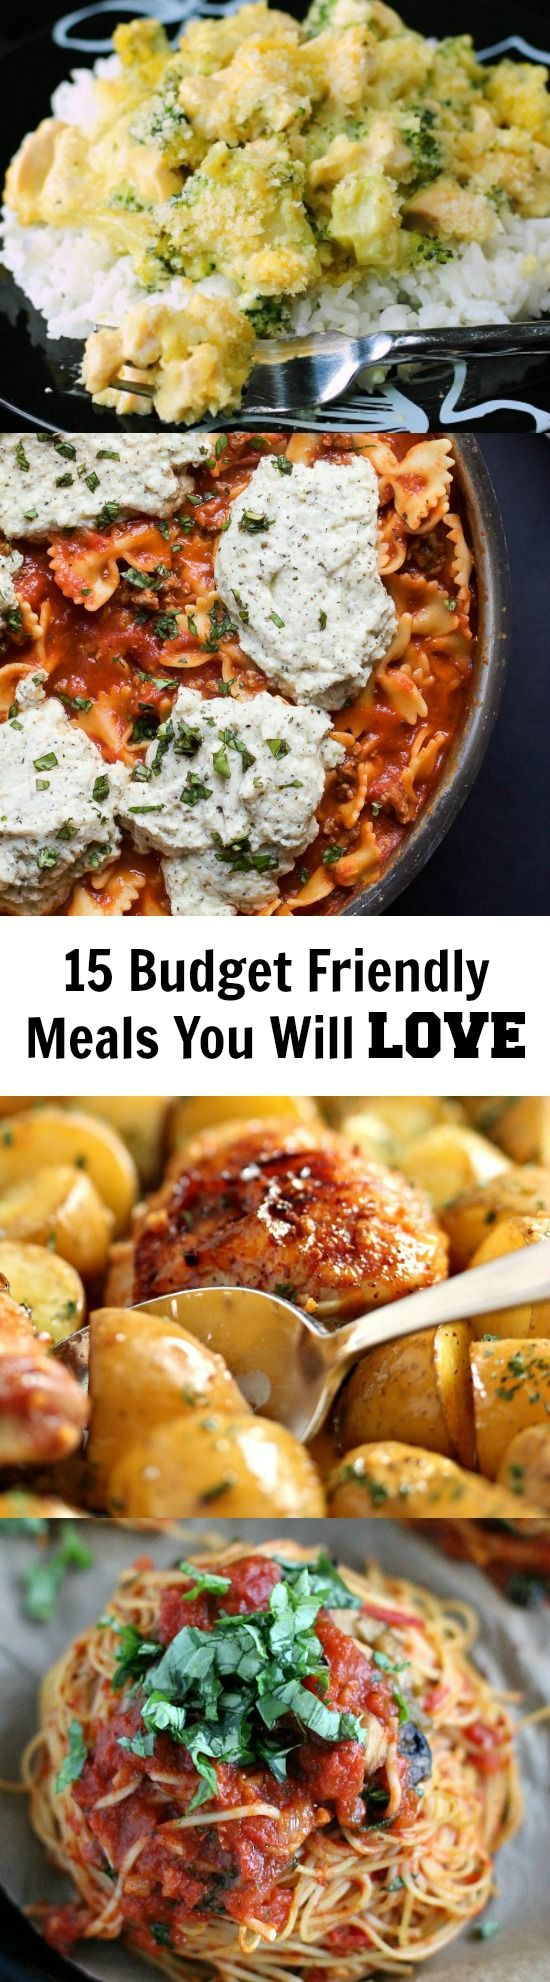 15 Incredible Inexpensive Meals Your Family Will LOVE!